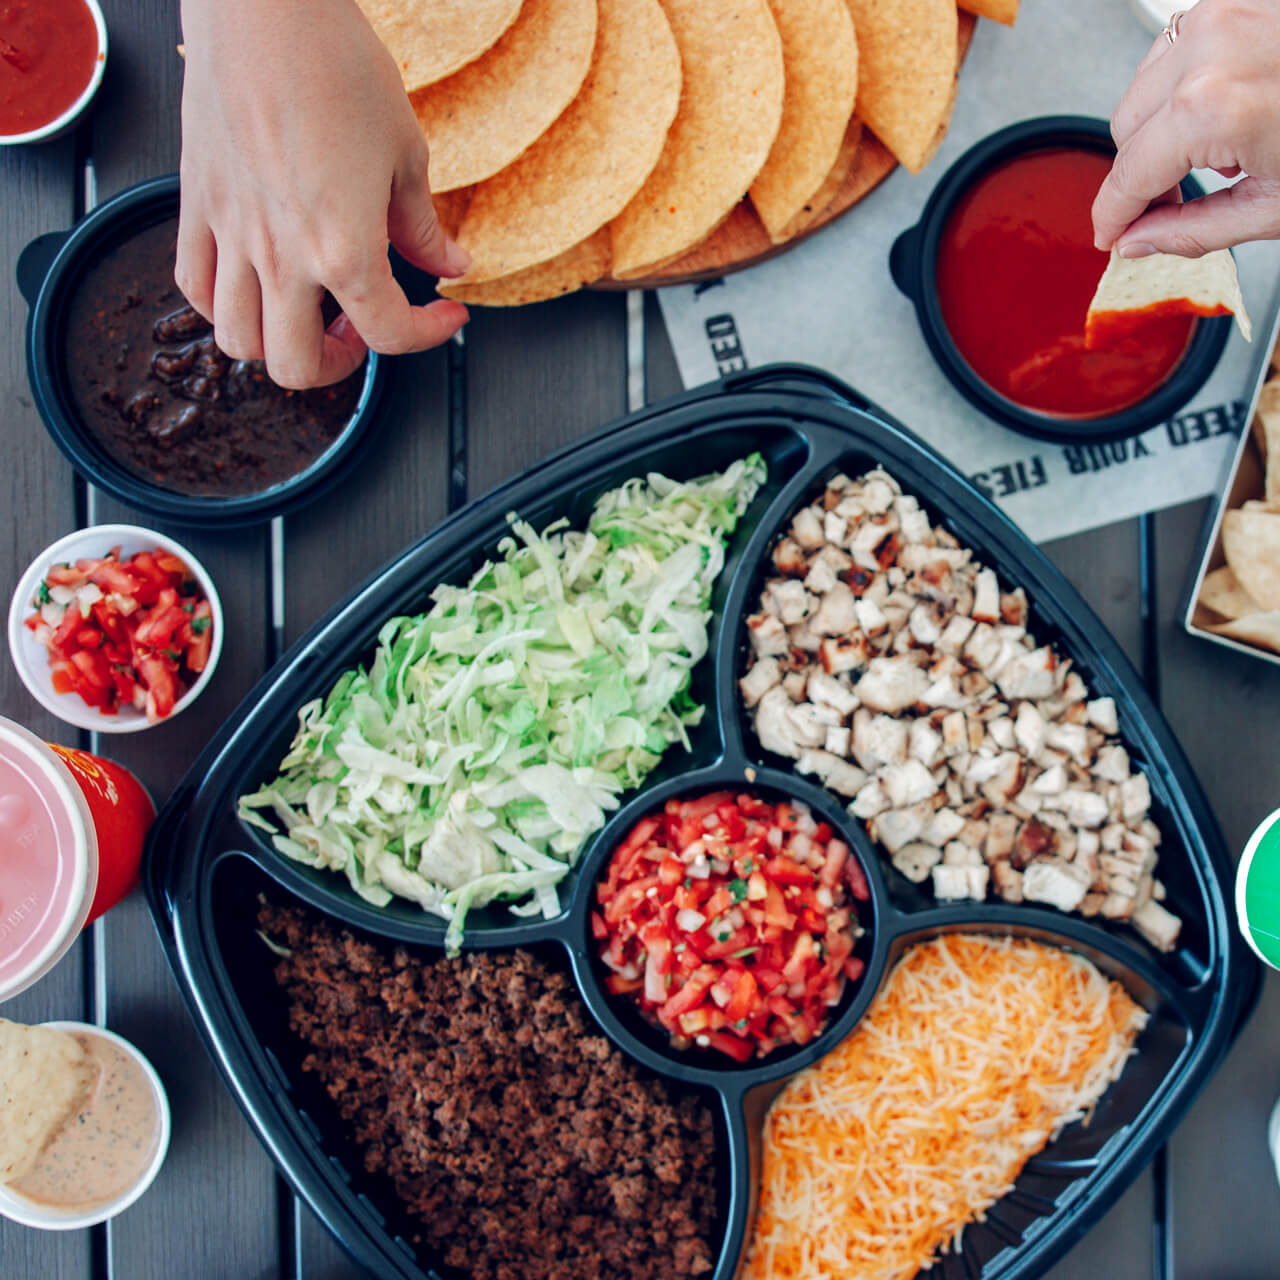 People dipping chips into salsa at a catered event